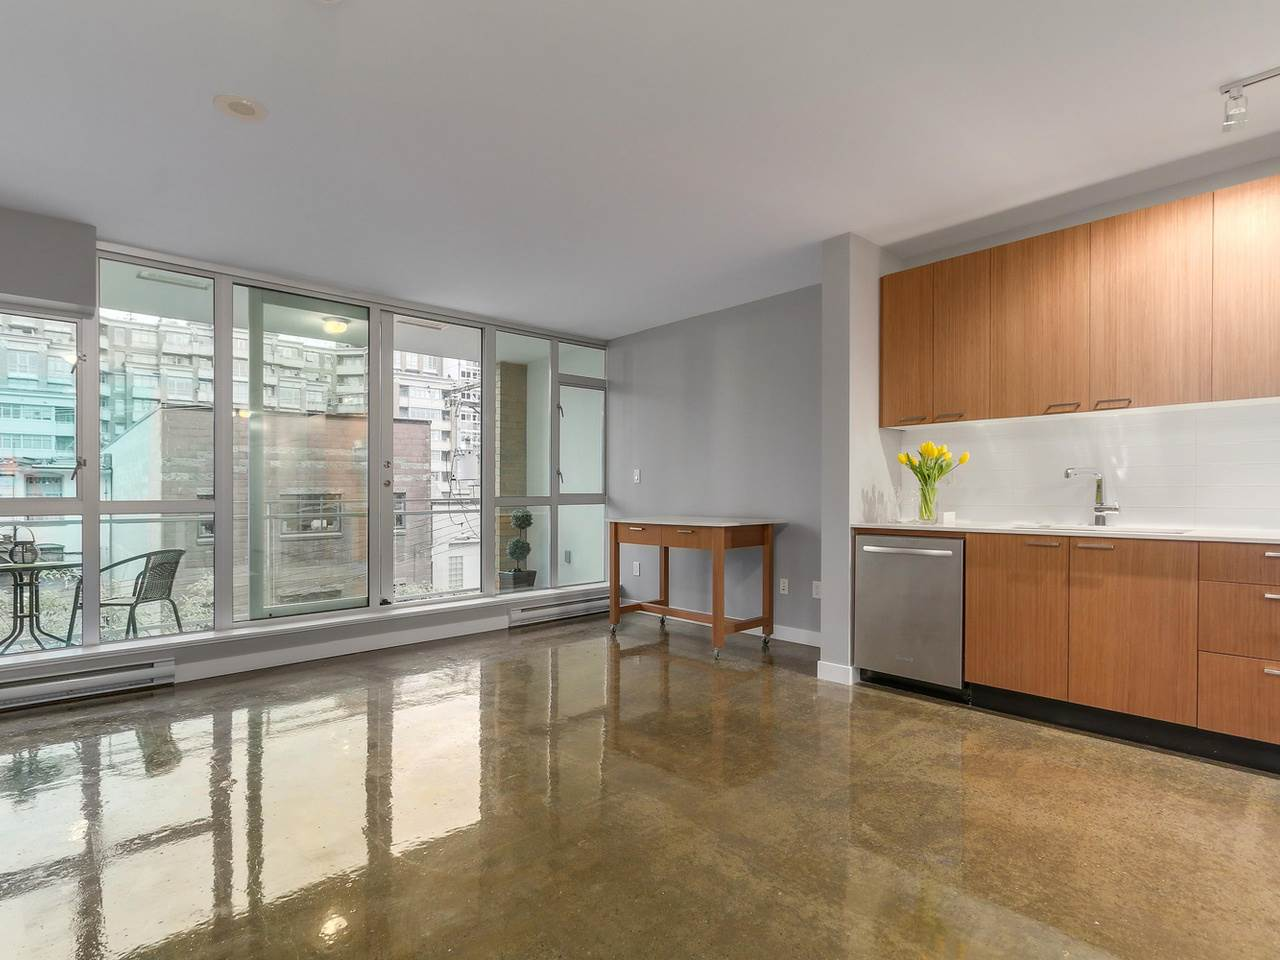 Main Photo: 409 221 UNION STREET in Vancouver: Mount Pleasant VE Condo for sale (Vancouver East)  : MLS® # R2119480